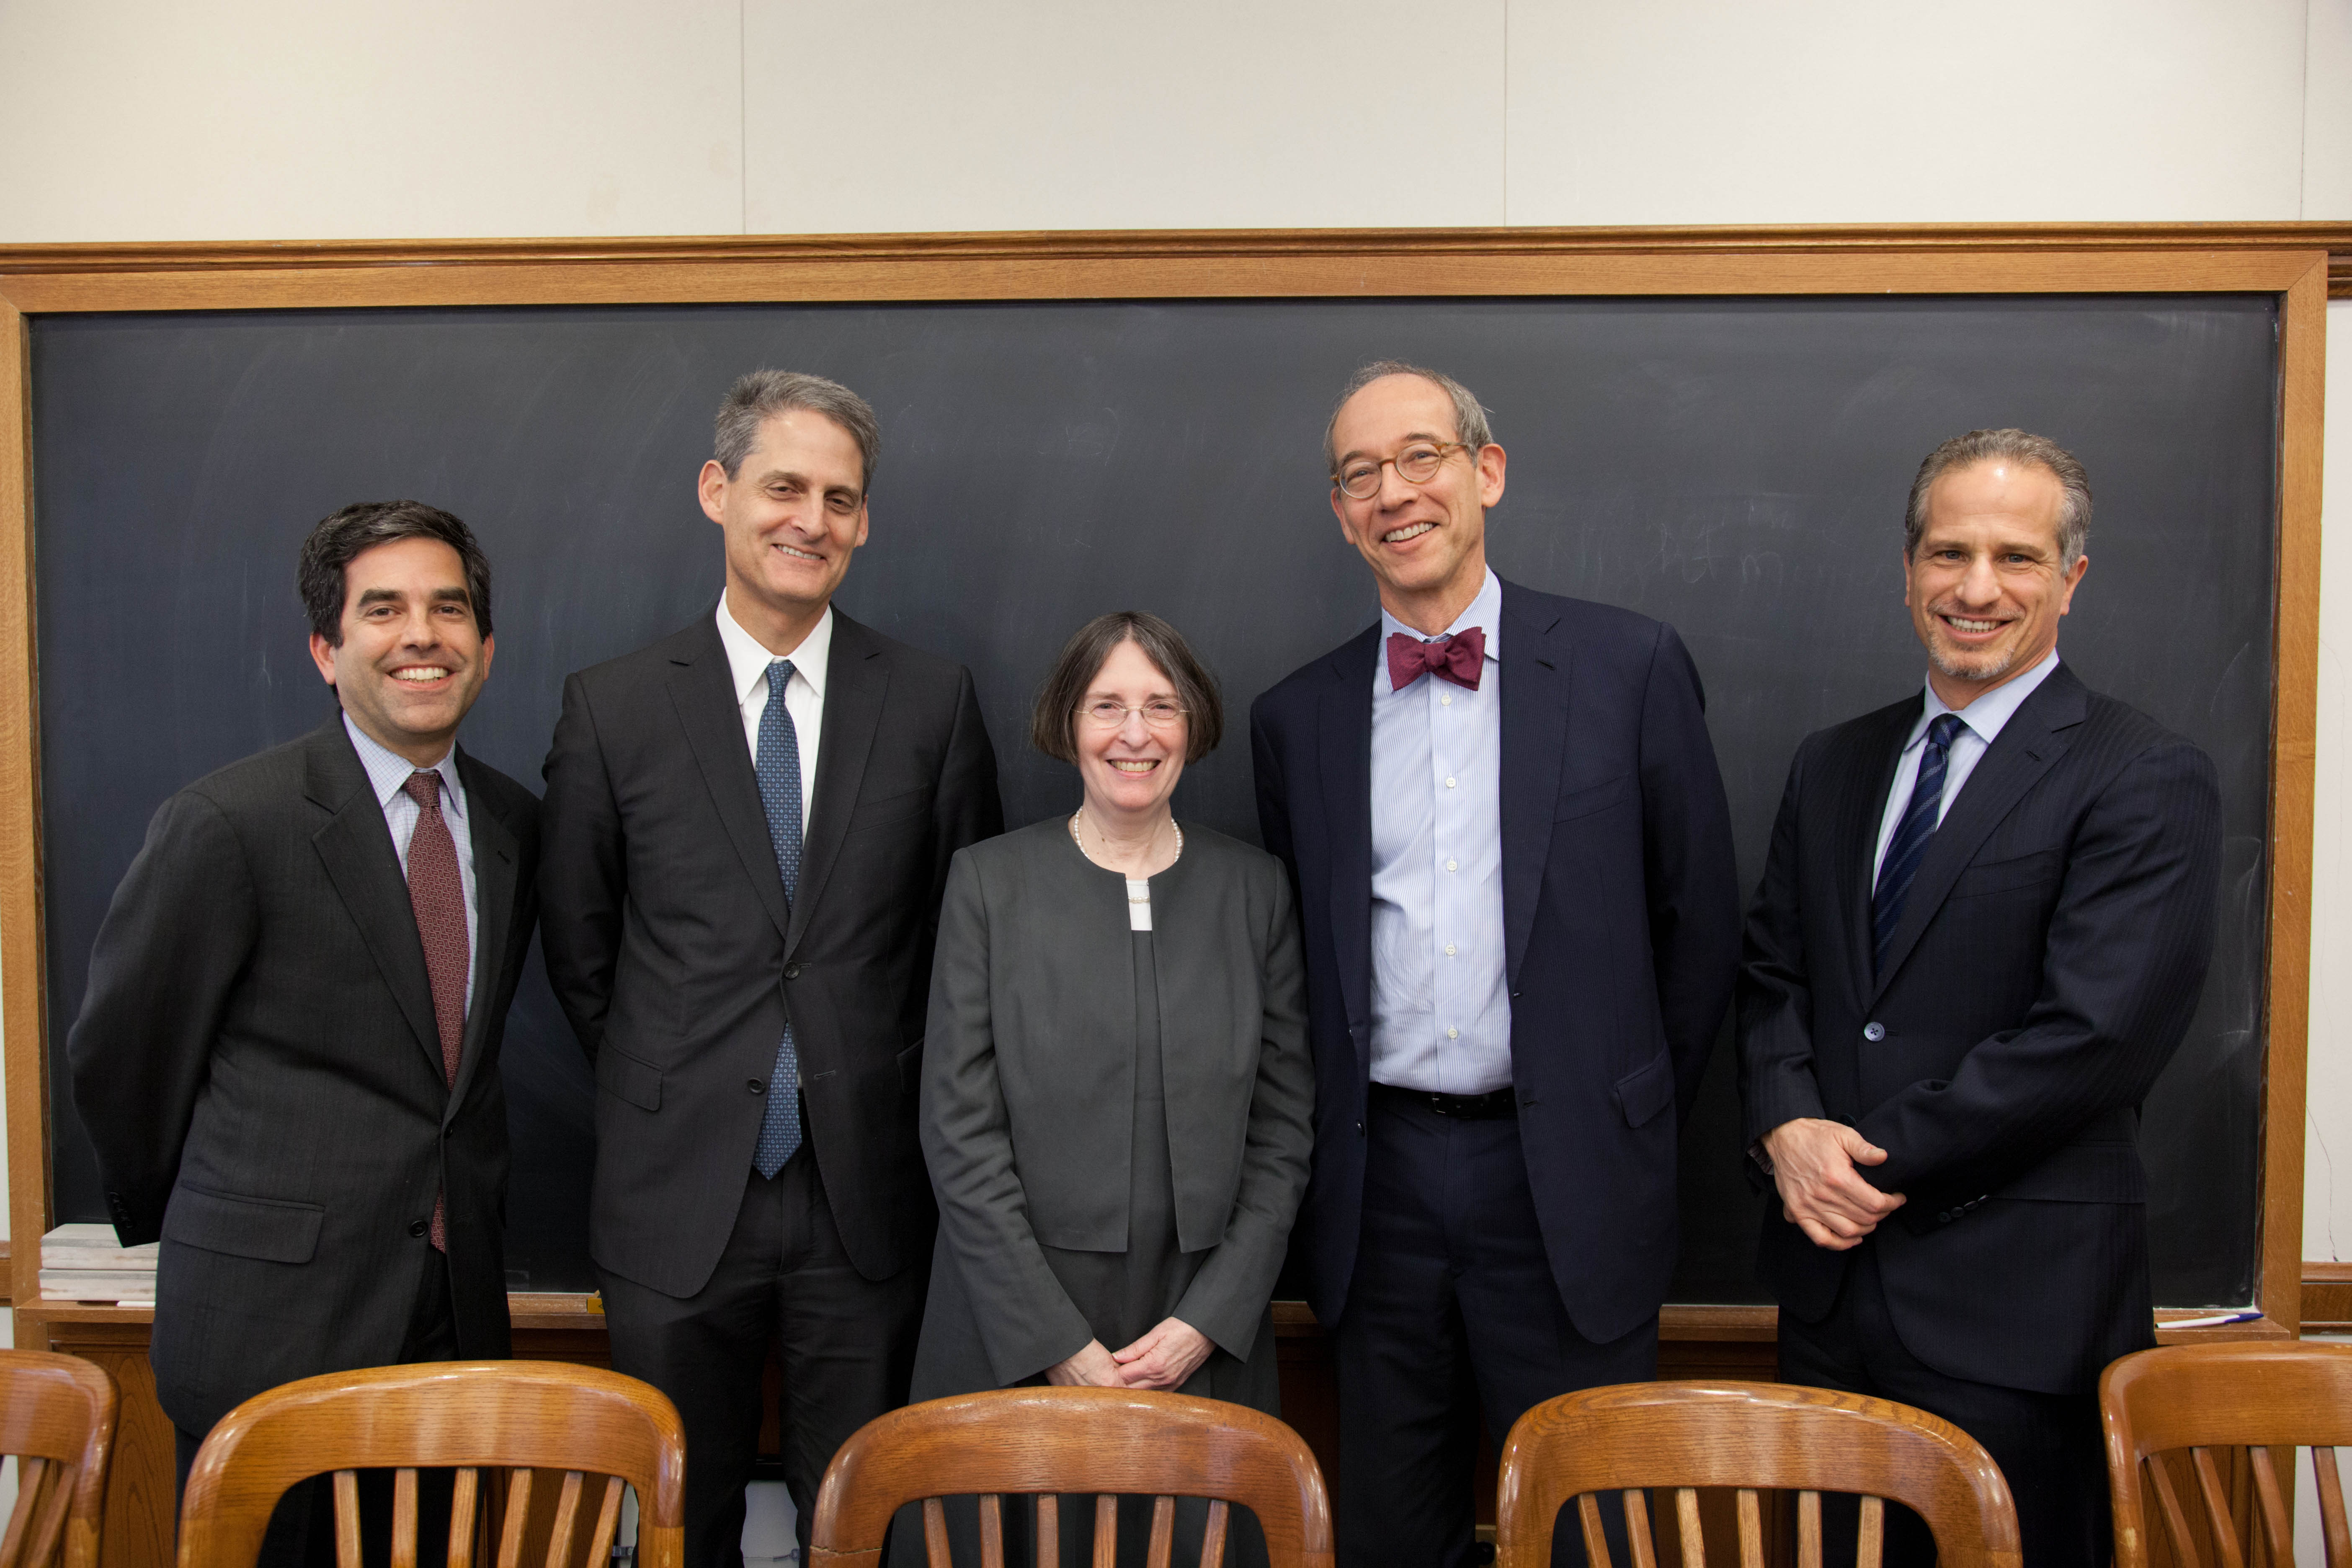 Andrew Ceresney '96, Stephen Cutler '85, YLS Prof. and Center Dir. Roberta Romano '80, Andrew Levander, and Richard Zabel